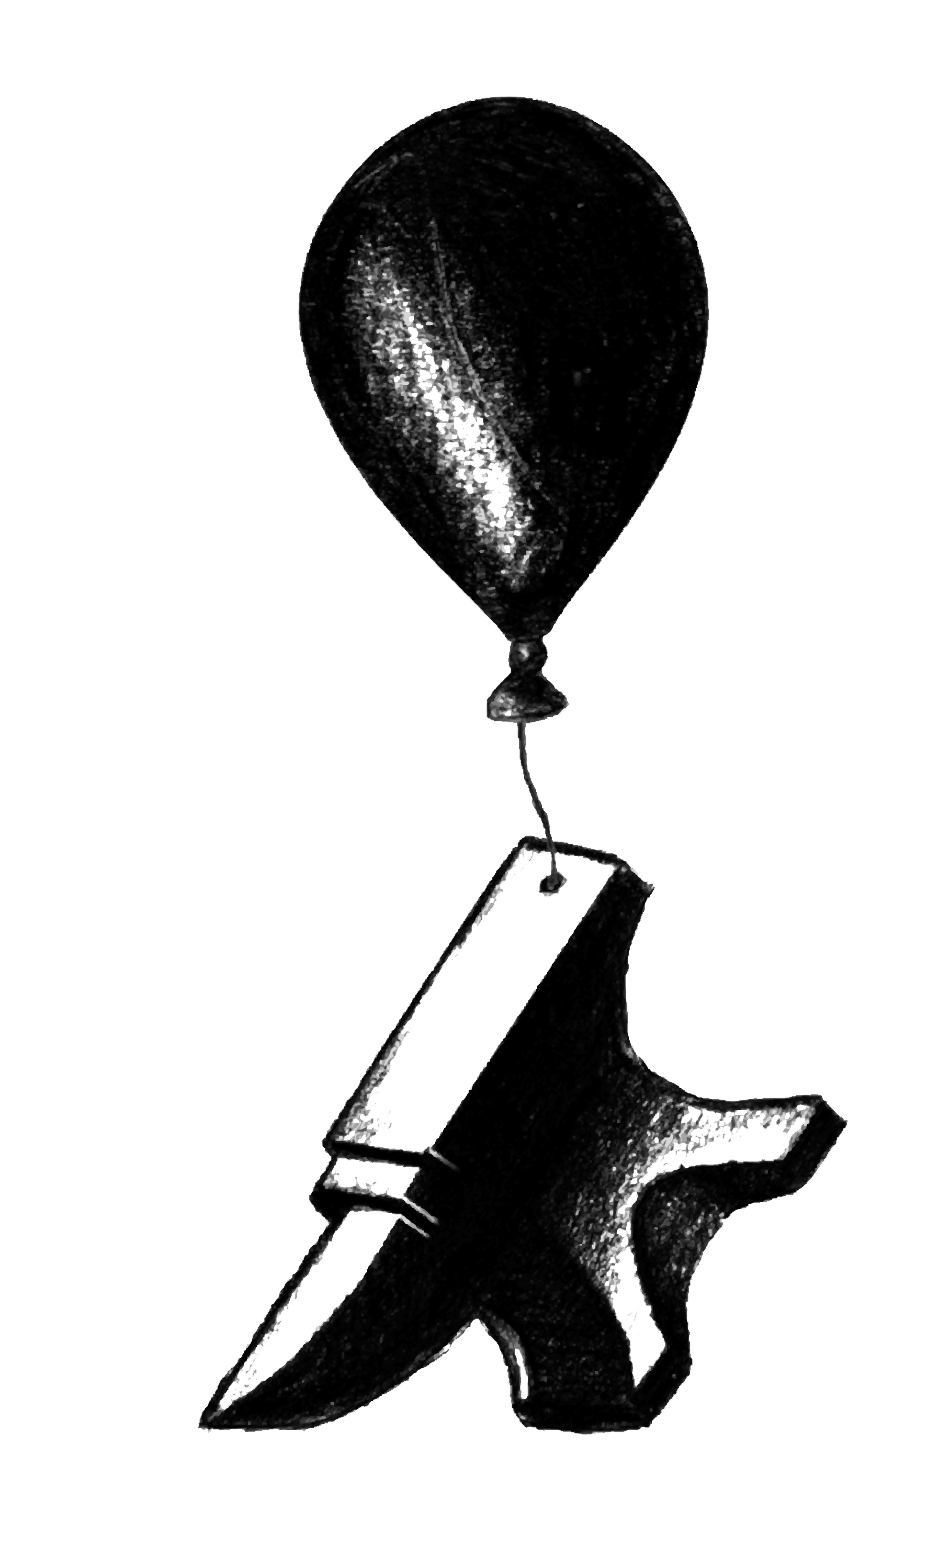 Balloon & Anvil